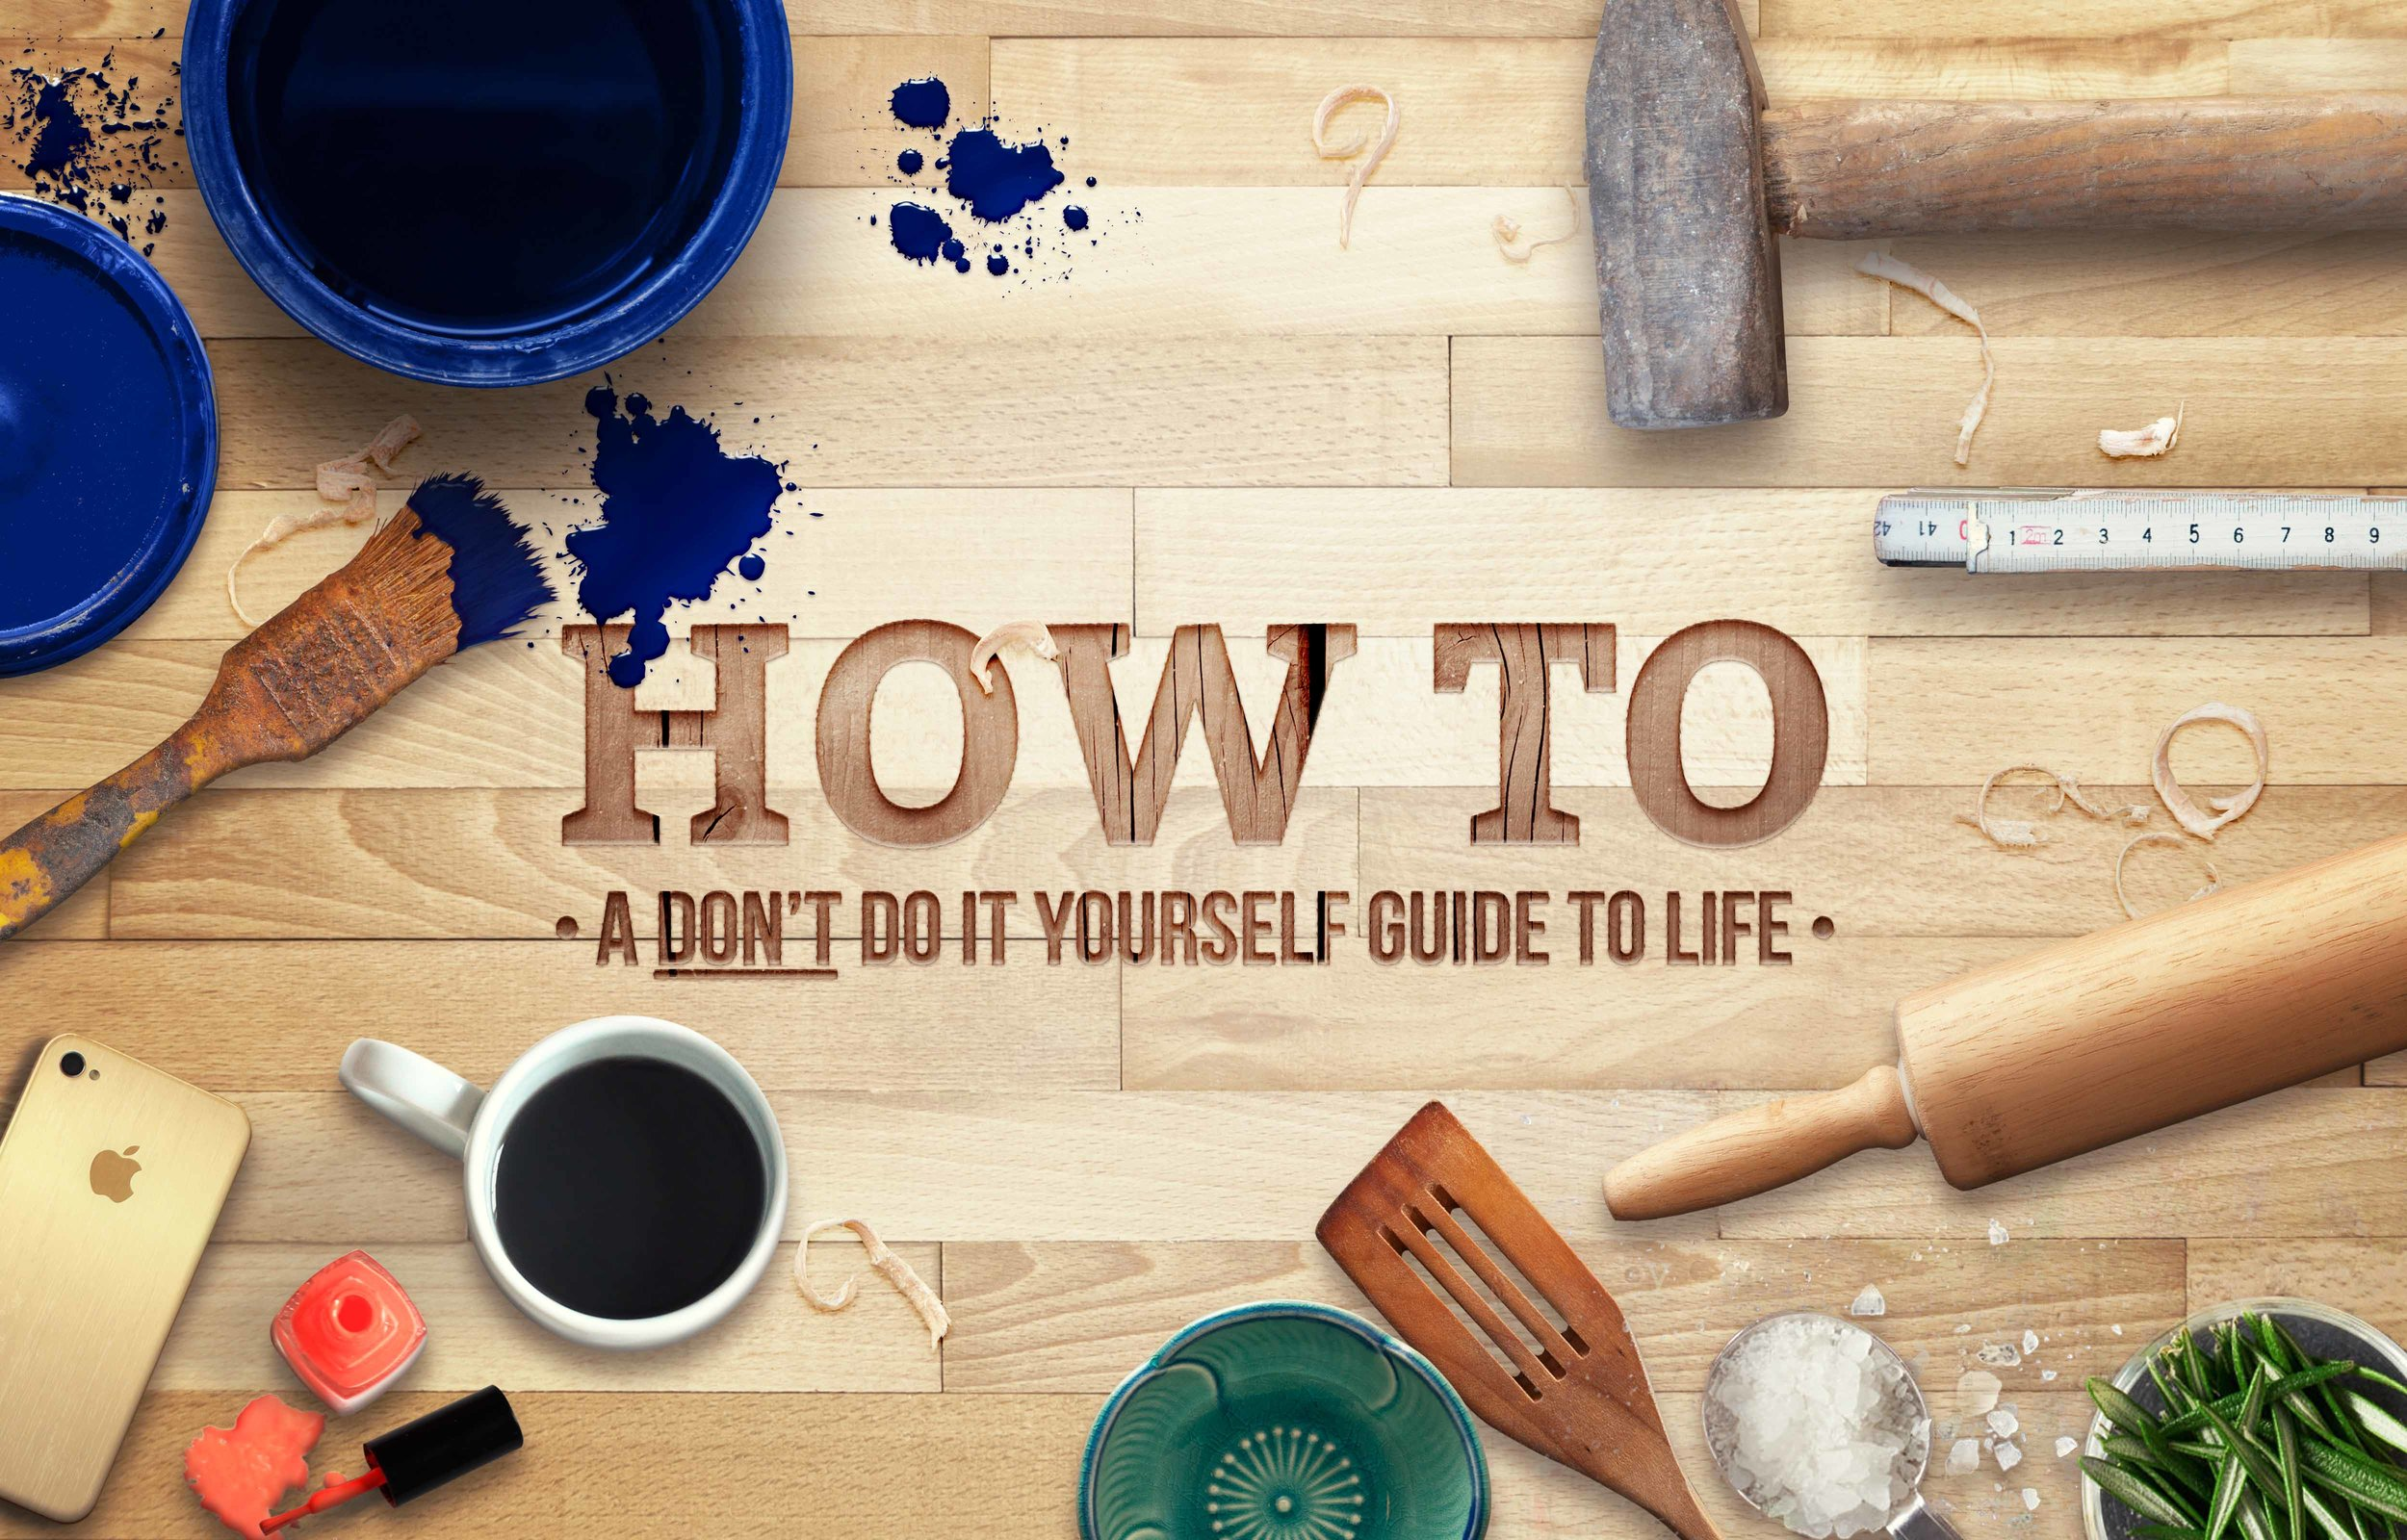 How To: A Don't Do It Yourself Guide to Life